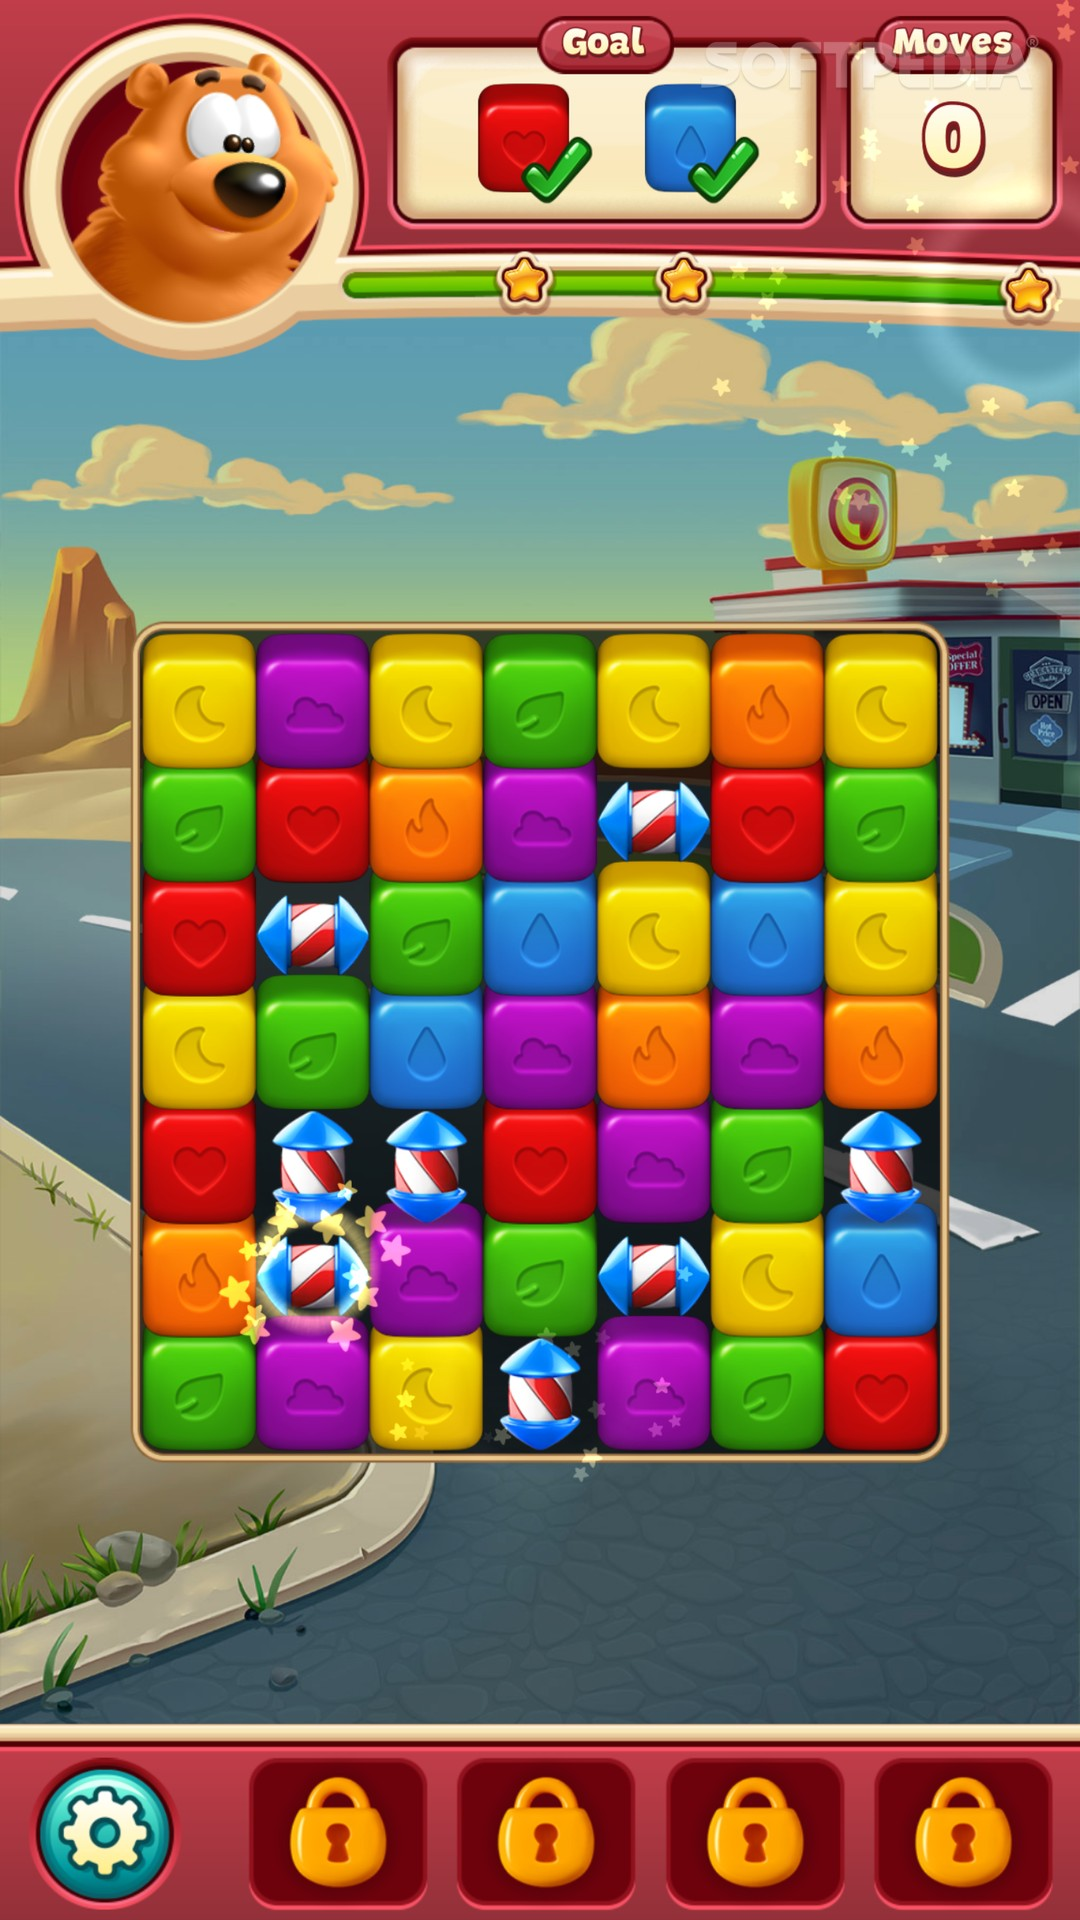 Toon blast download for mac | Download Toon Blast for PC on